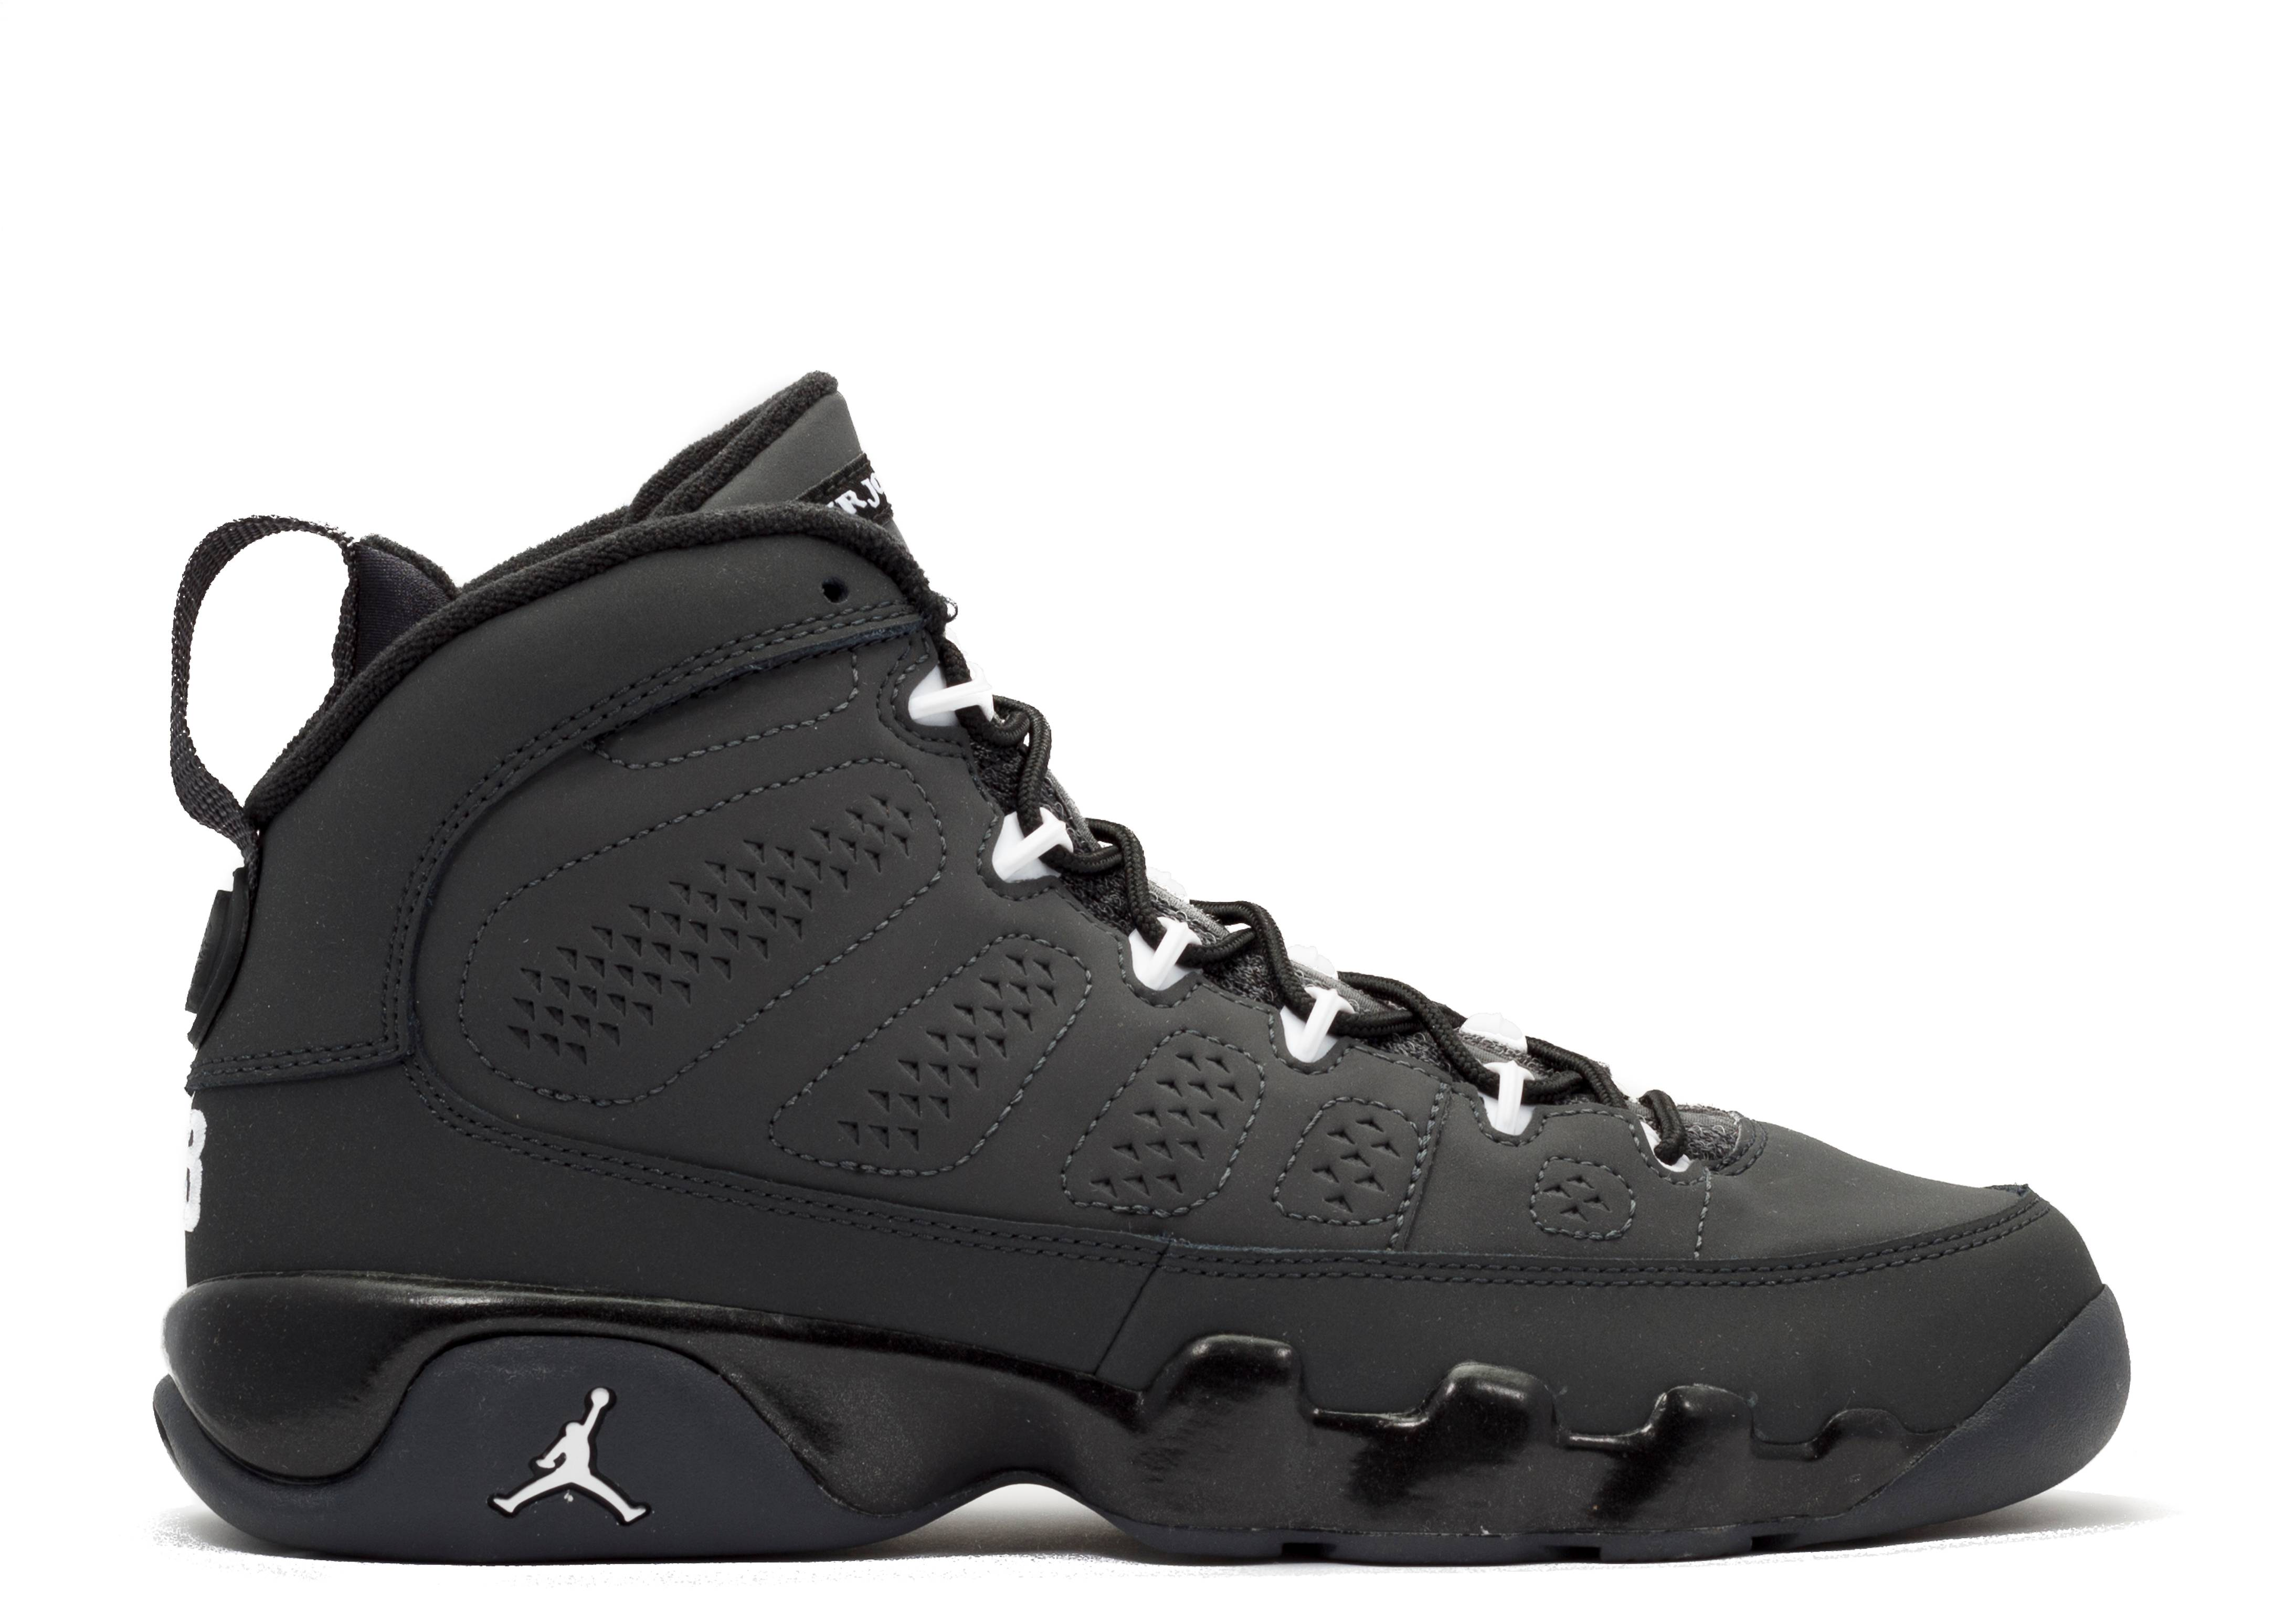 Air Jordan 9 Rétro Bg Anthracite